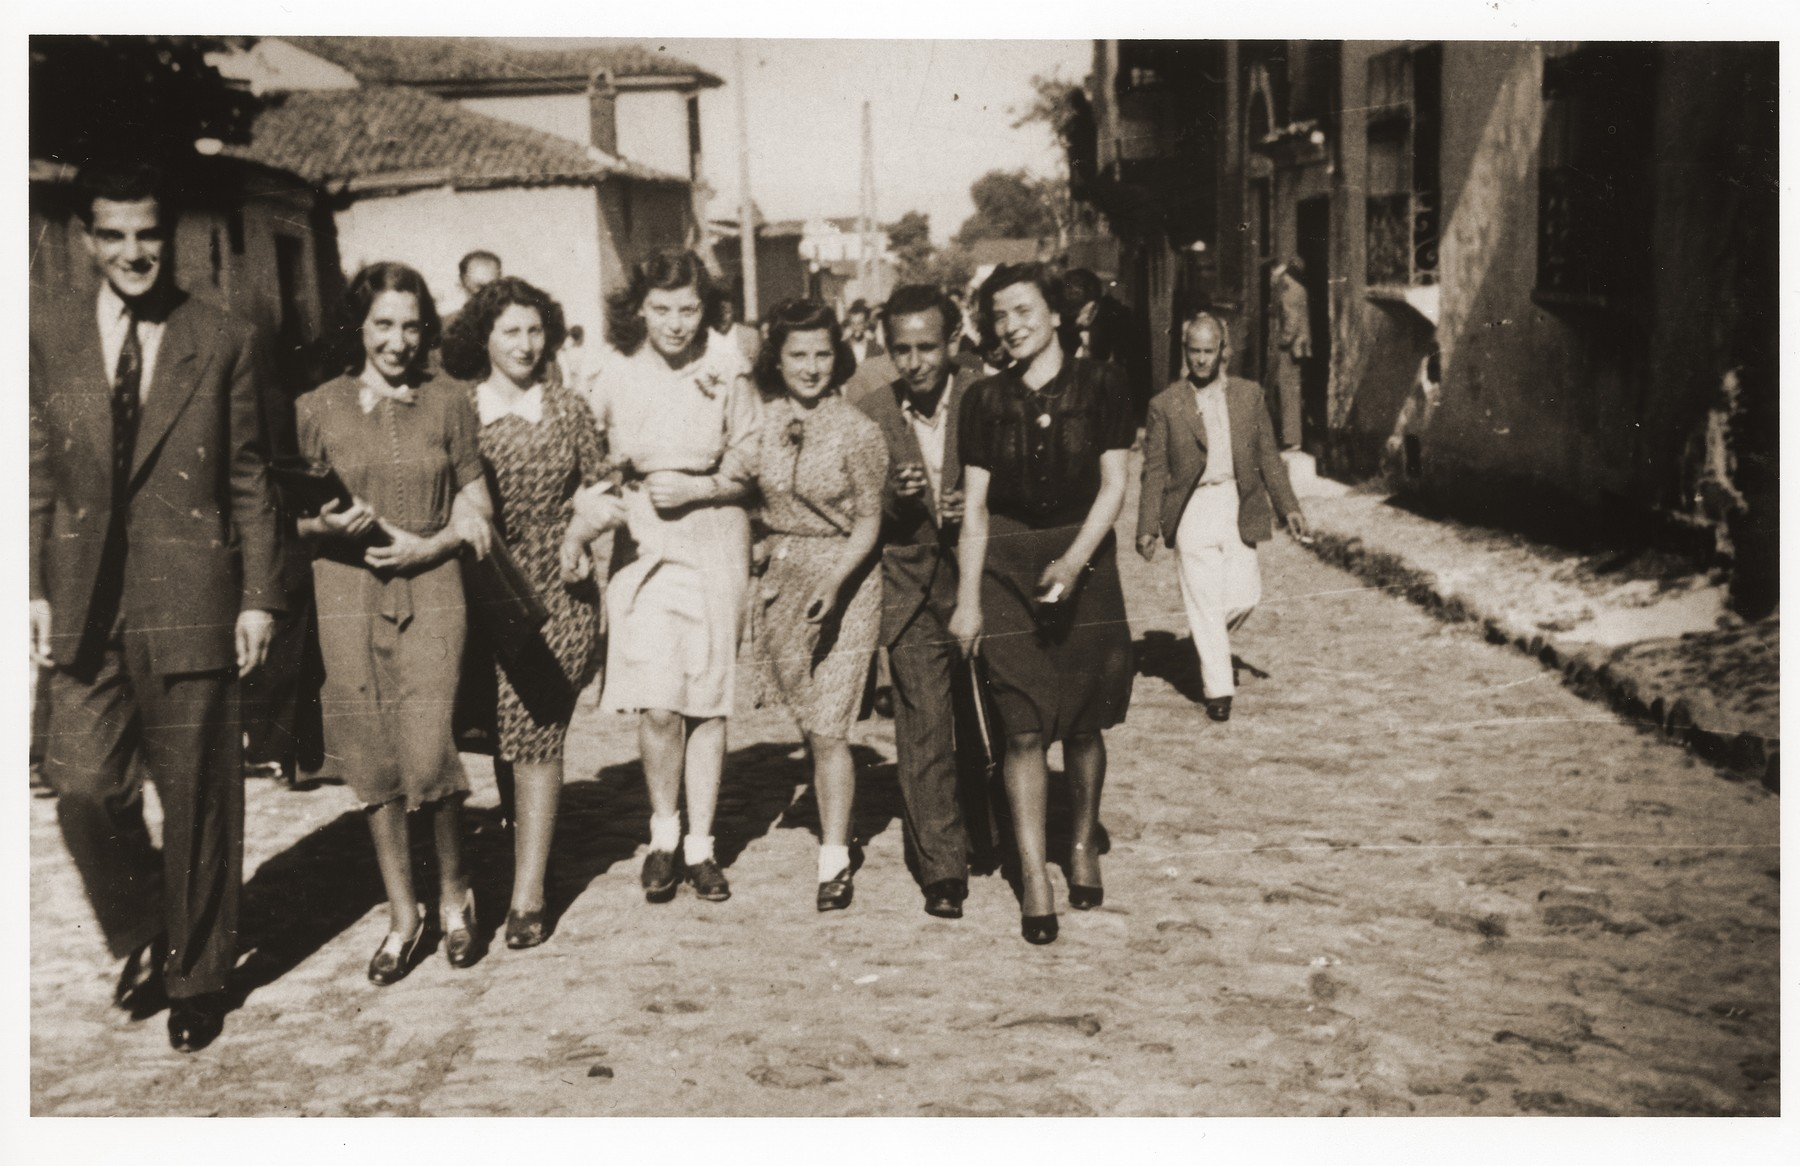 Family and friends walk down Tabaneh Street in the Jewish quarter of Monastir, just  after a wedding (synagogue pictured in the background on the left).  Among those pictured are (left to right) Leon Franco (a cousin of Rachel), Rachel (nee Nahmias) Kornberg, [first name unknown] Pardo, [first name unknown] Shami, Elinor [last name unknown], Moise [last name unknown], and [an unidentified woman].